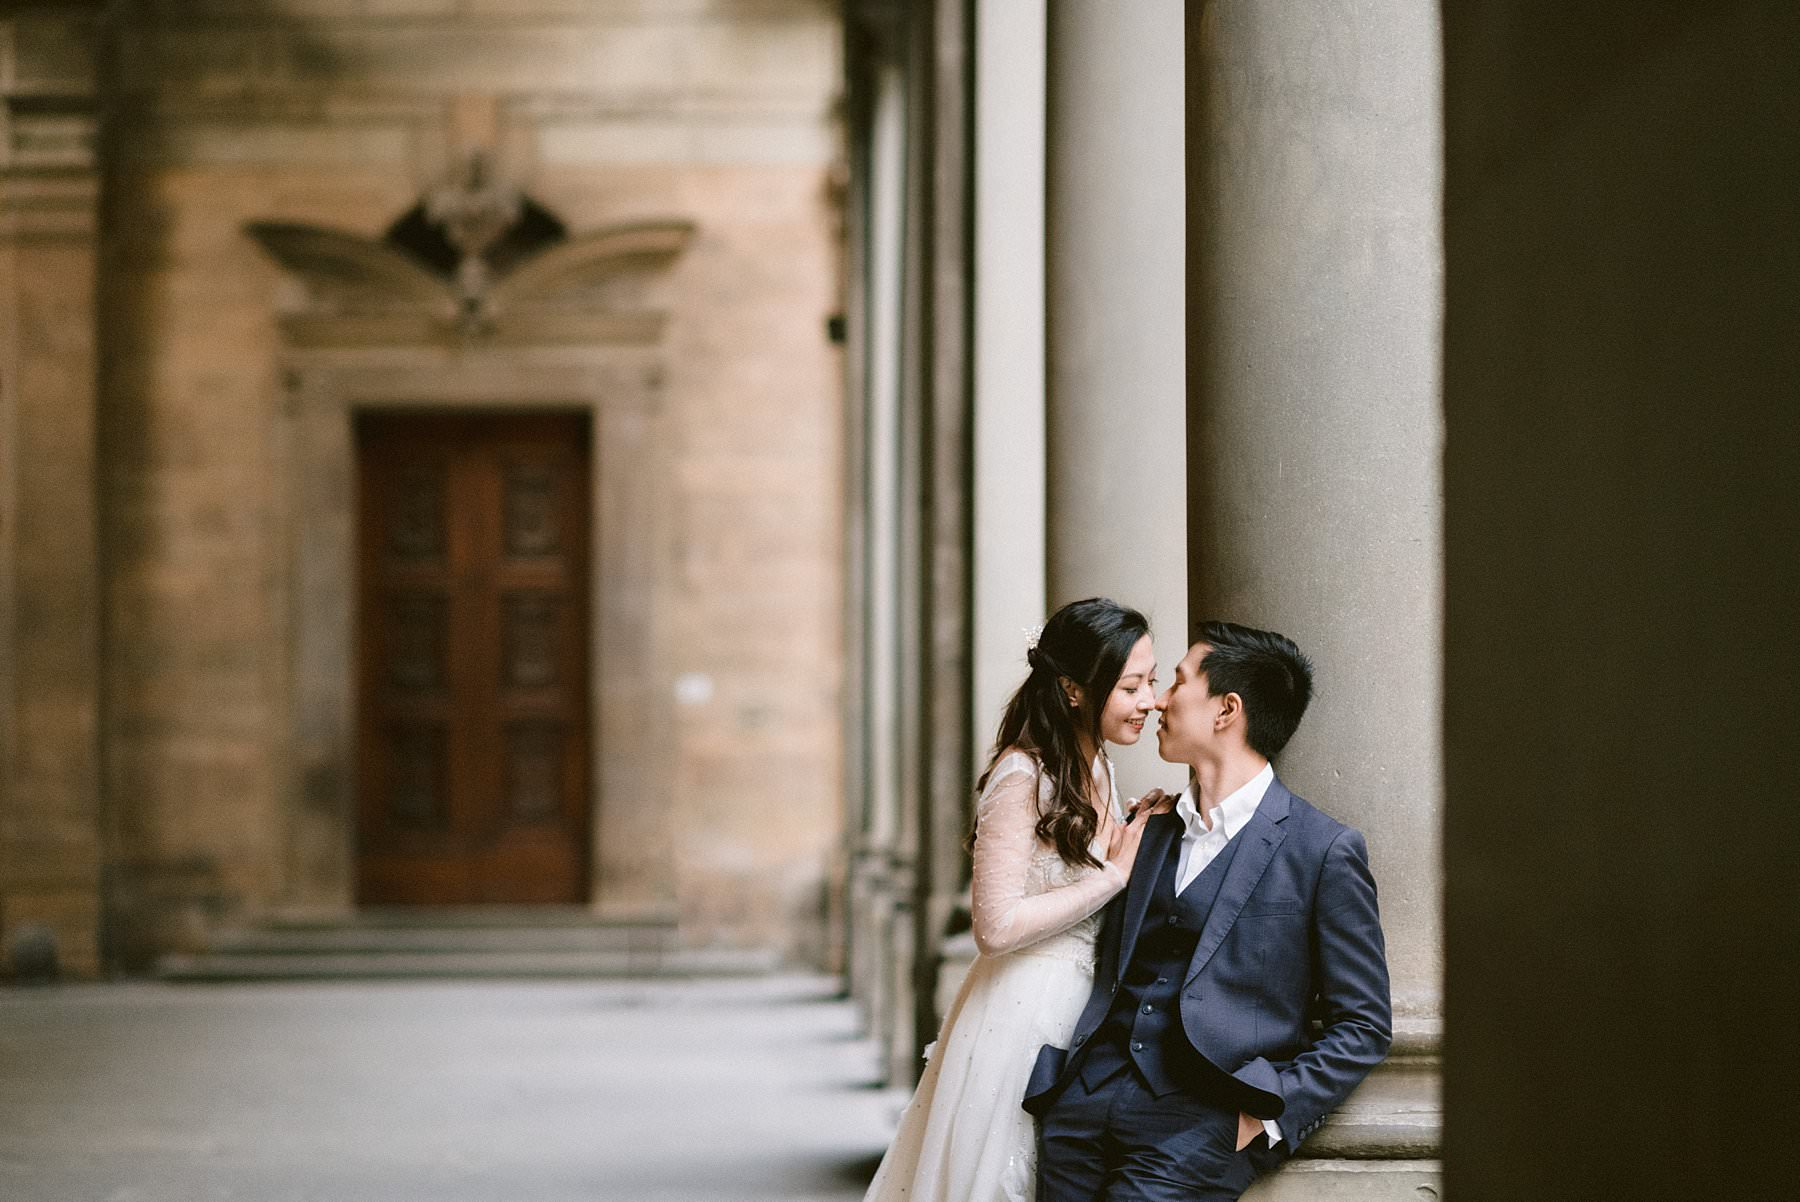 Romantic couple photos for a special honeymoon in Florence during covid-19 pandemic. Enjoy the priceless feeling of walking around the Uffizi Art Gallery with no tourist crowds